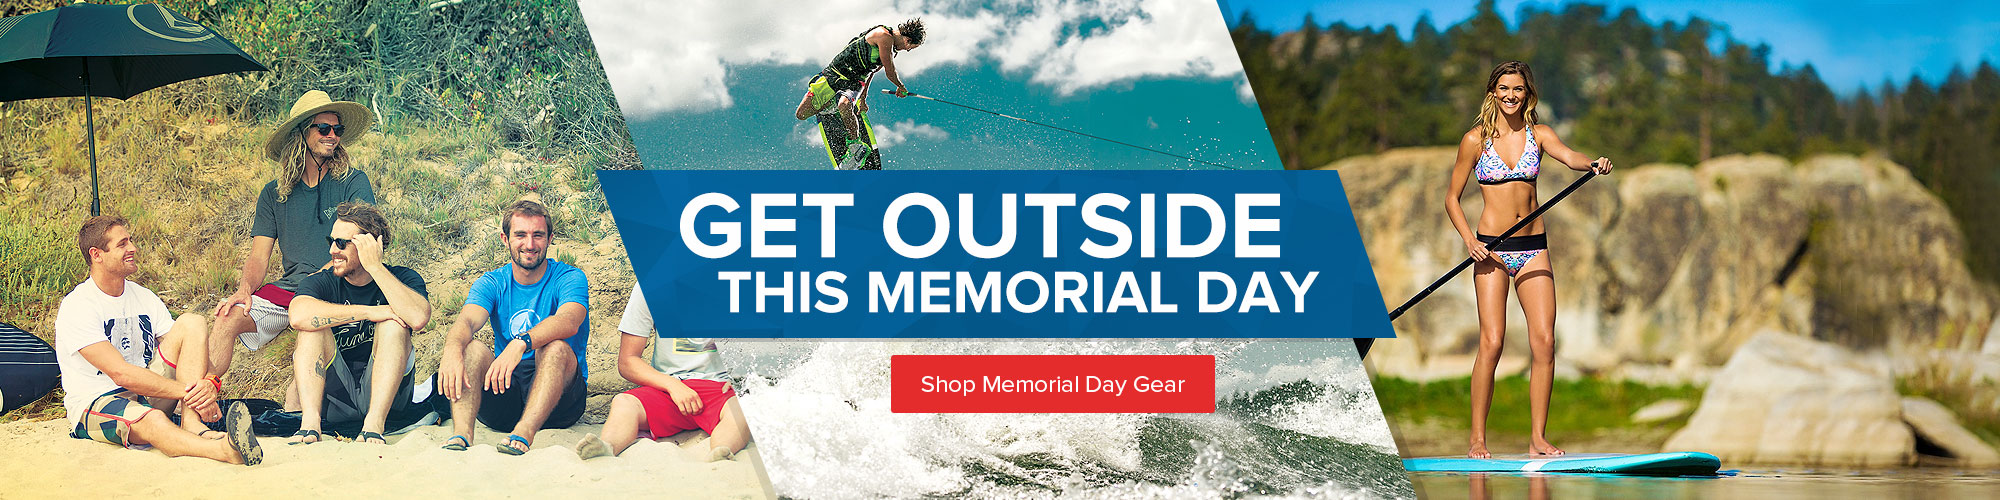 Get Outside This Memorial Day - Shop Memorial Day Gear.